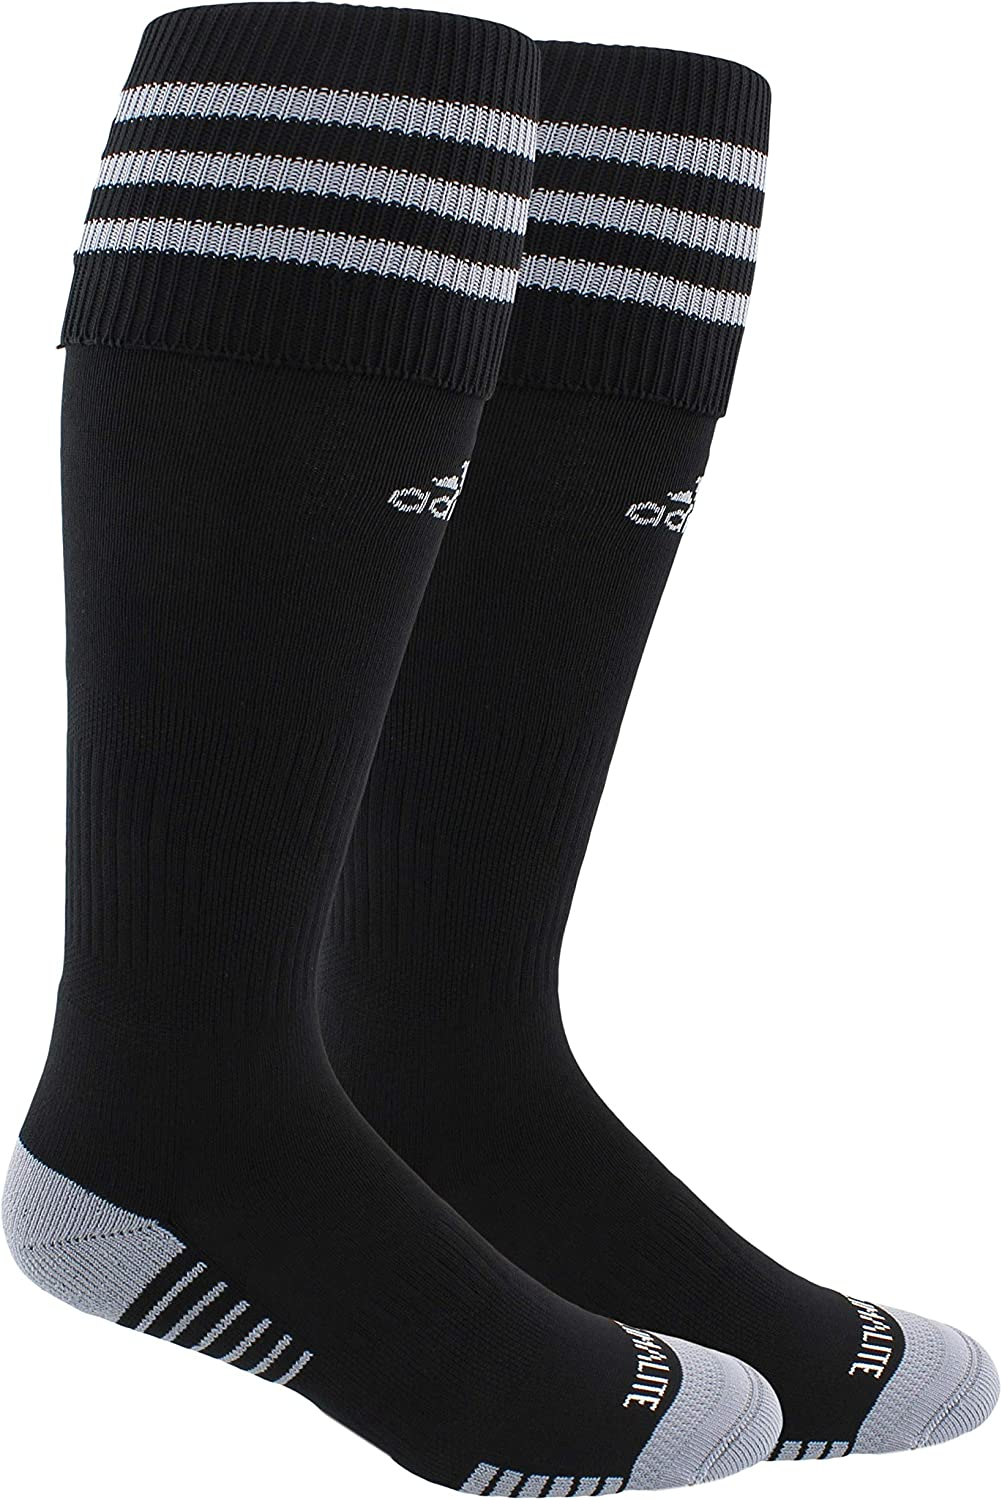 adidas Unisex Copa Zone Cushion III Soccer Socks (1-Pair), Black/Grey, 13C-4Y